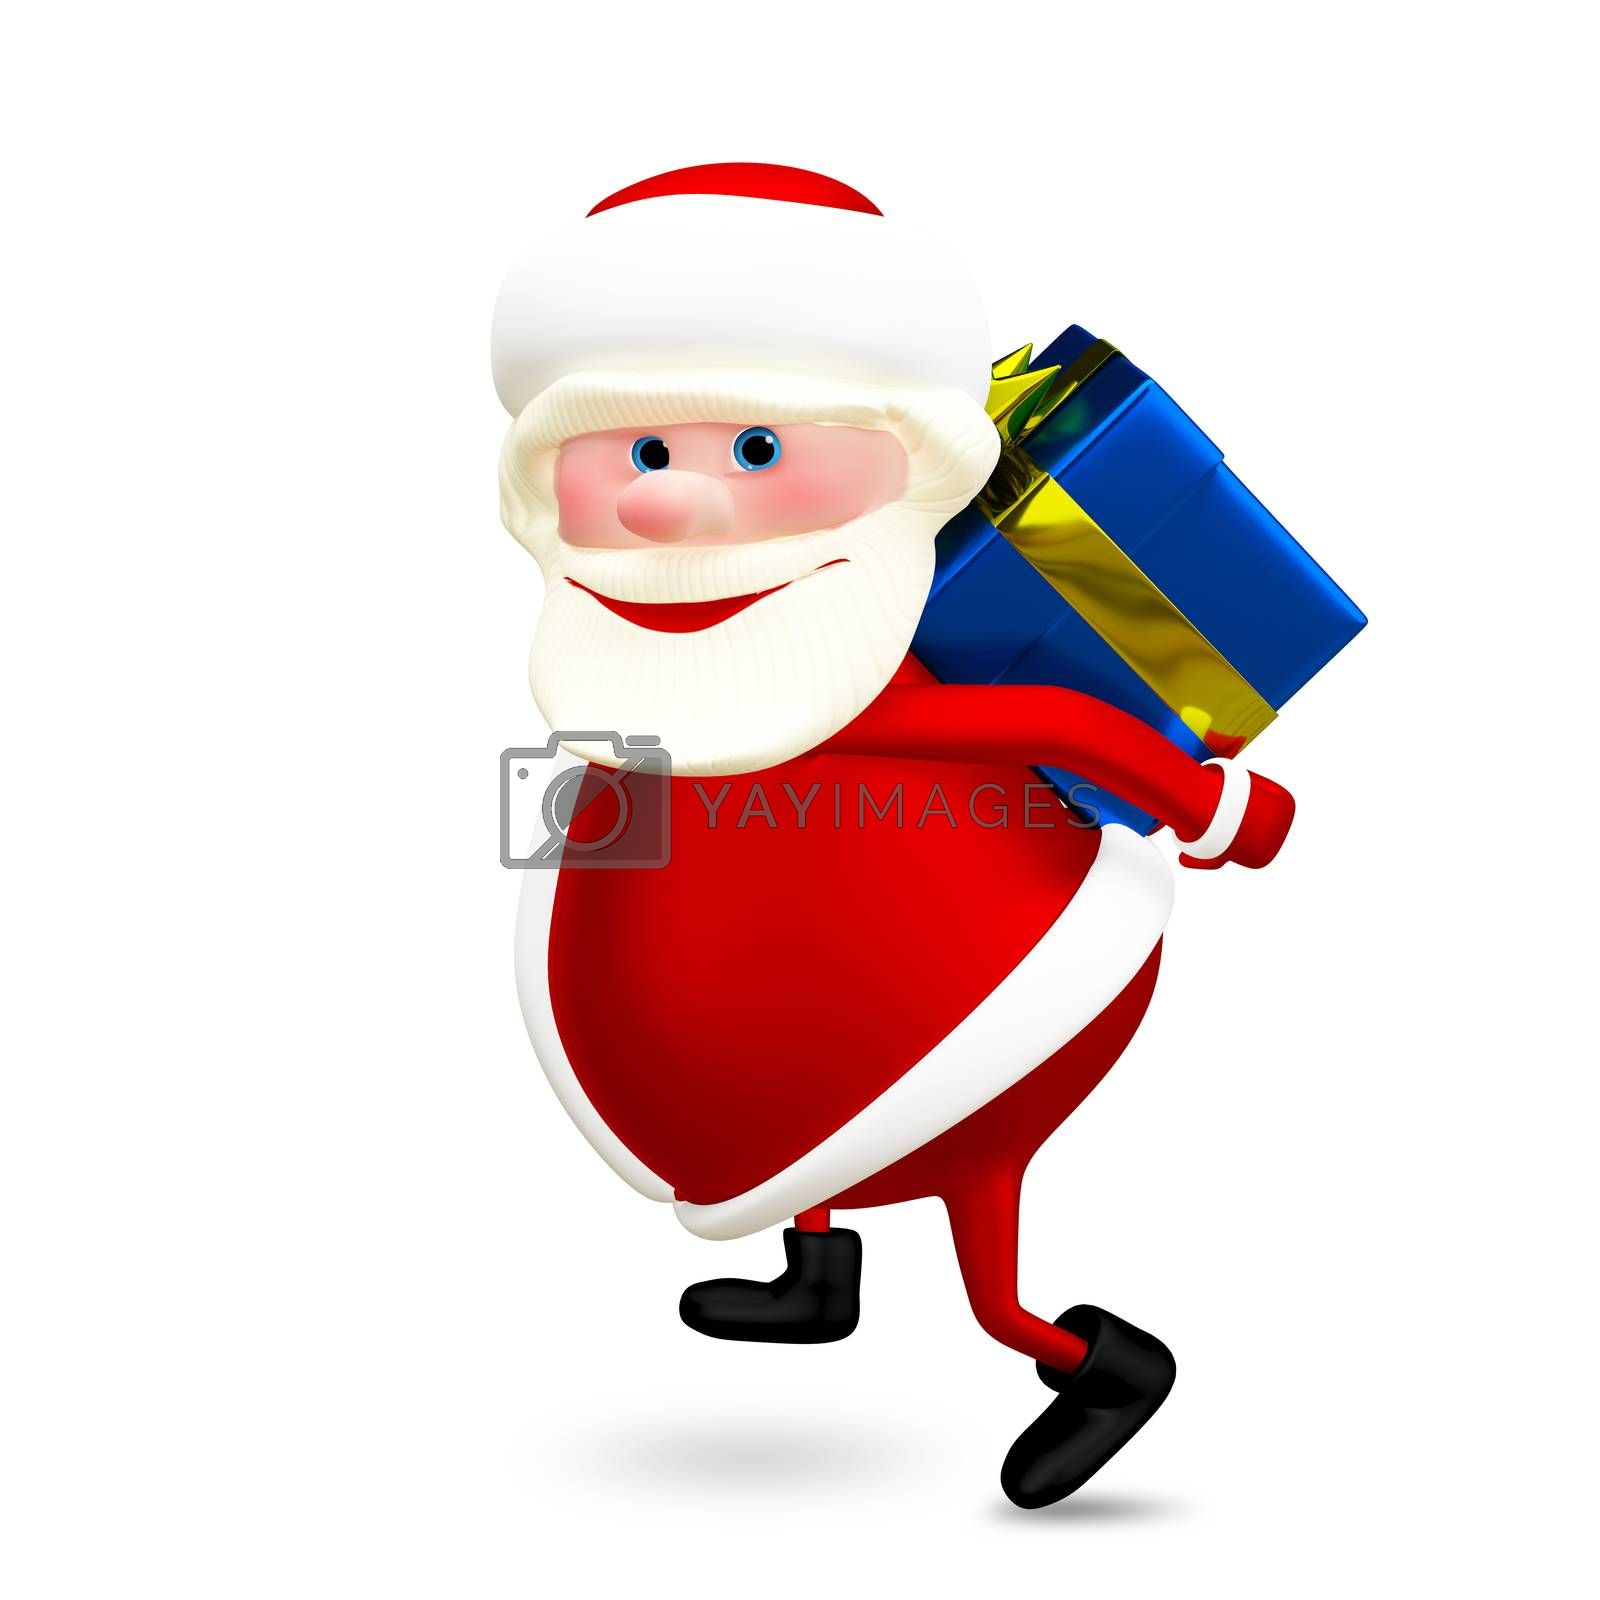 3D Illustration of Santa with a Gift on White Background